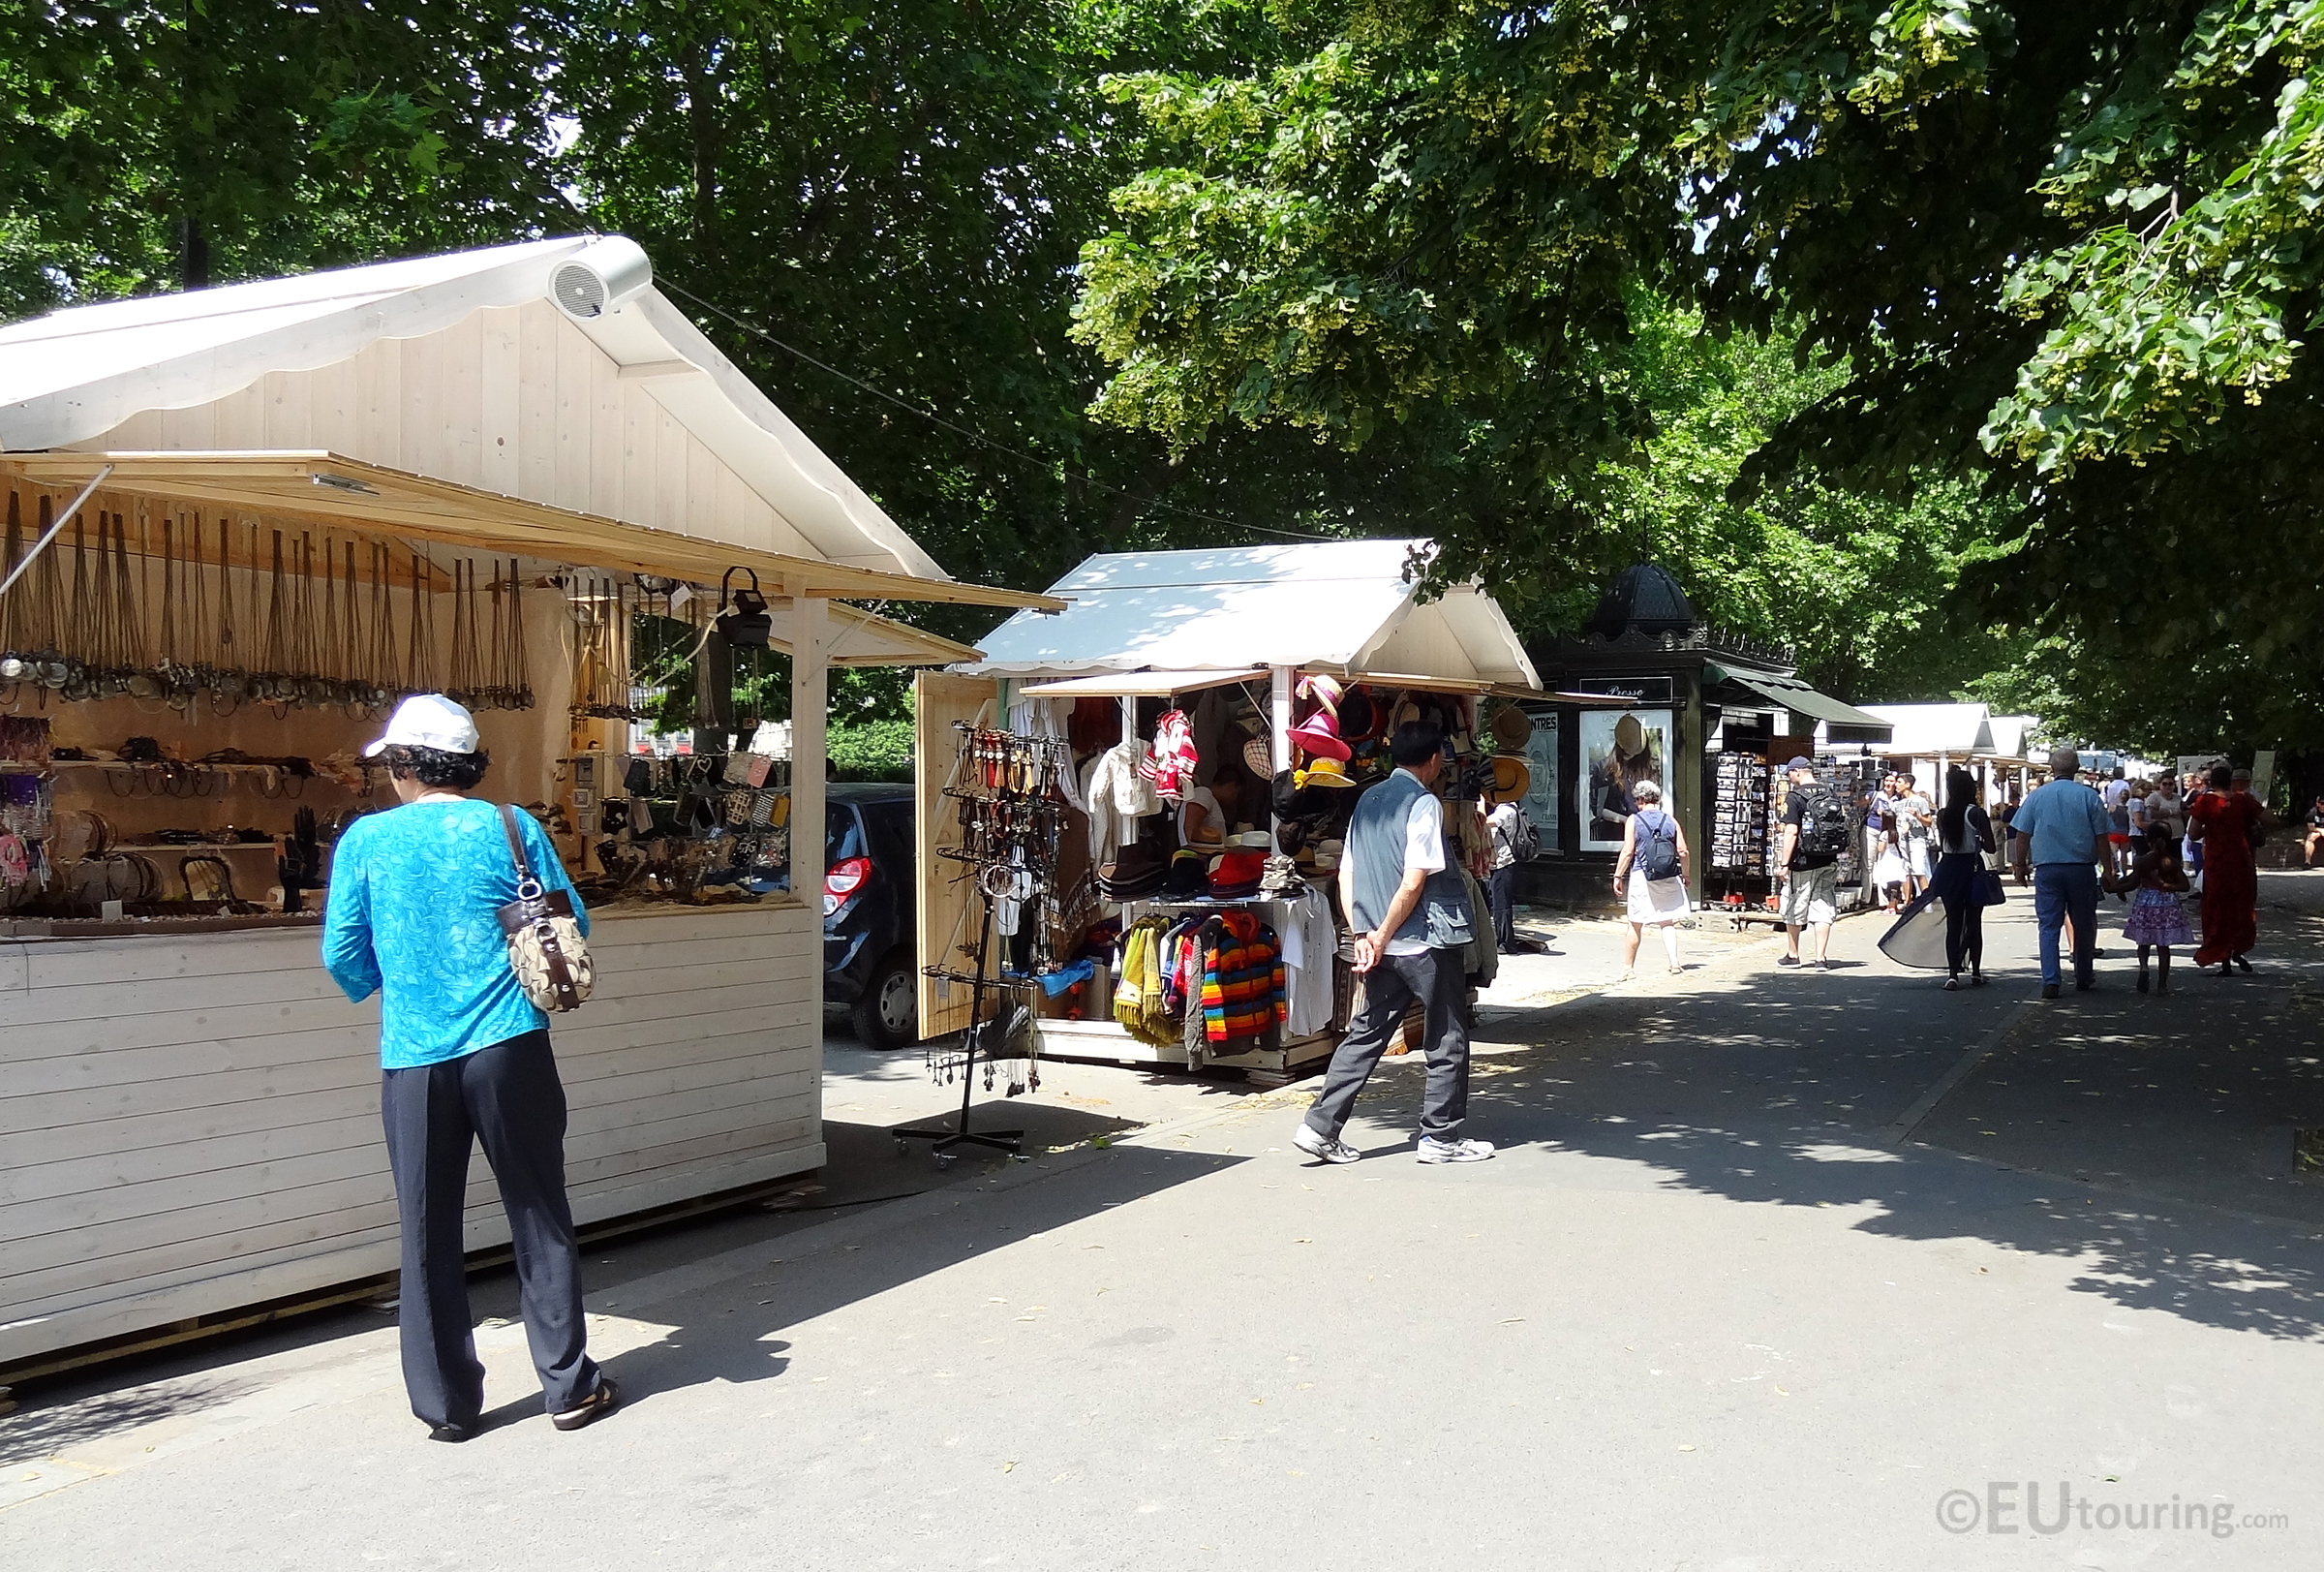 Varied markets along the path